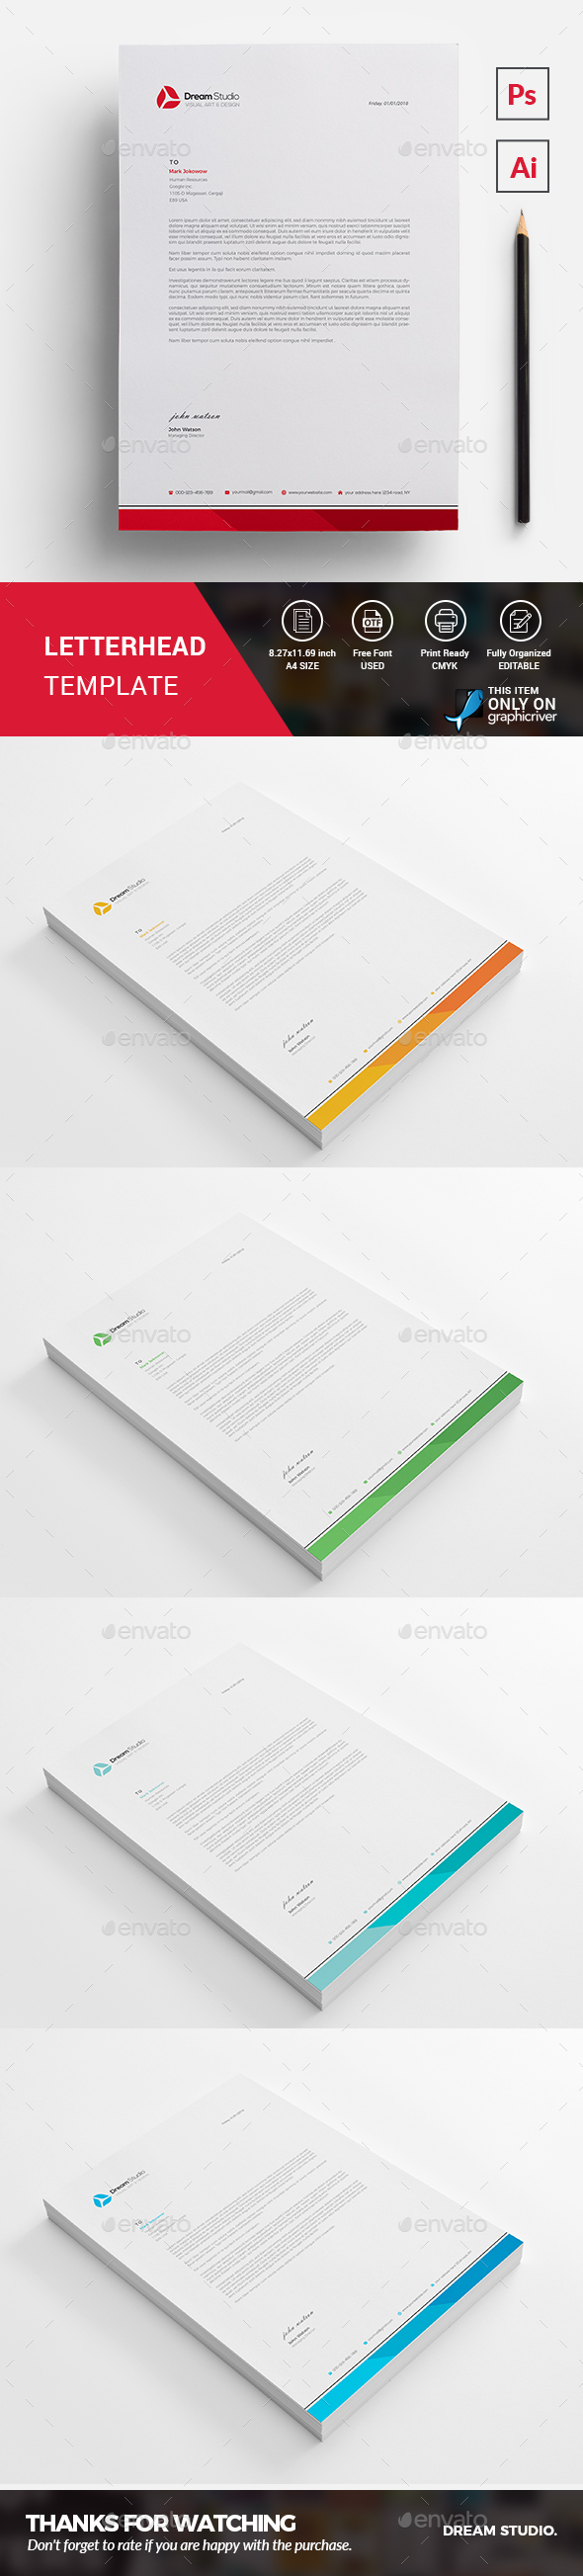 Letterhead Template - Business Cards Print Templates